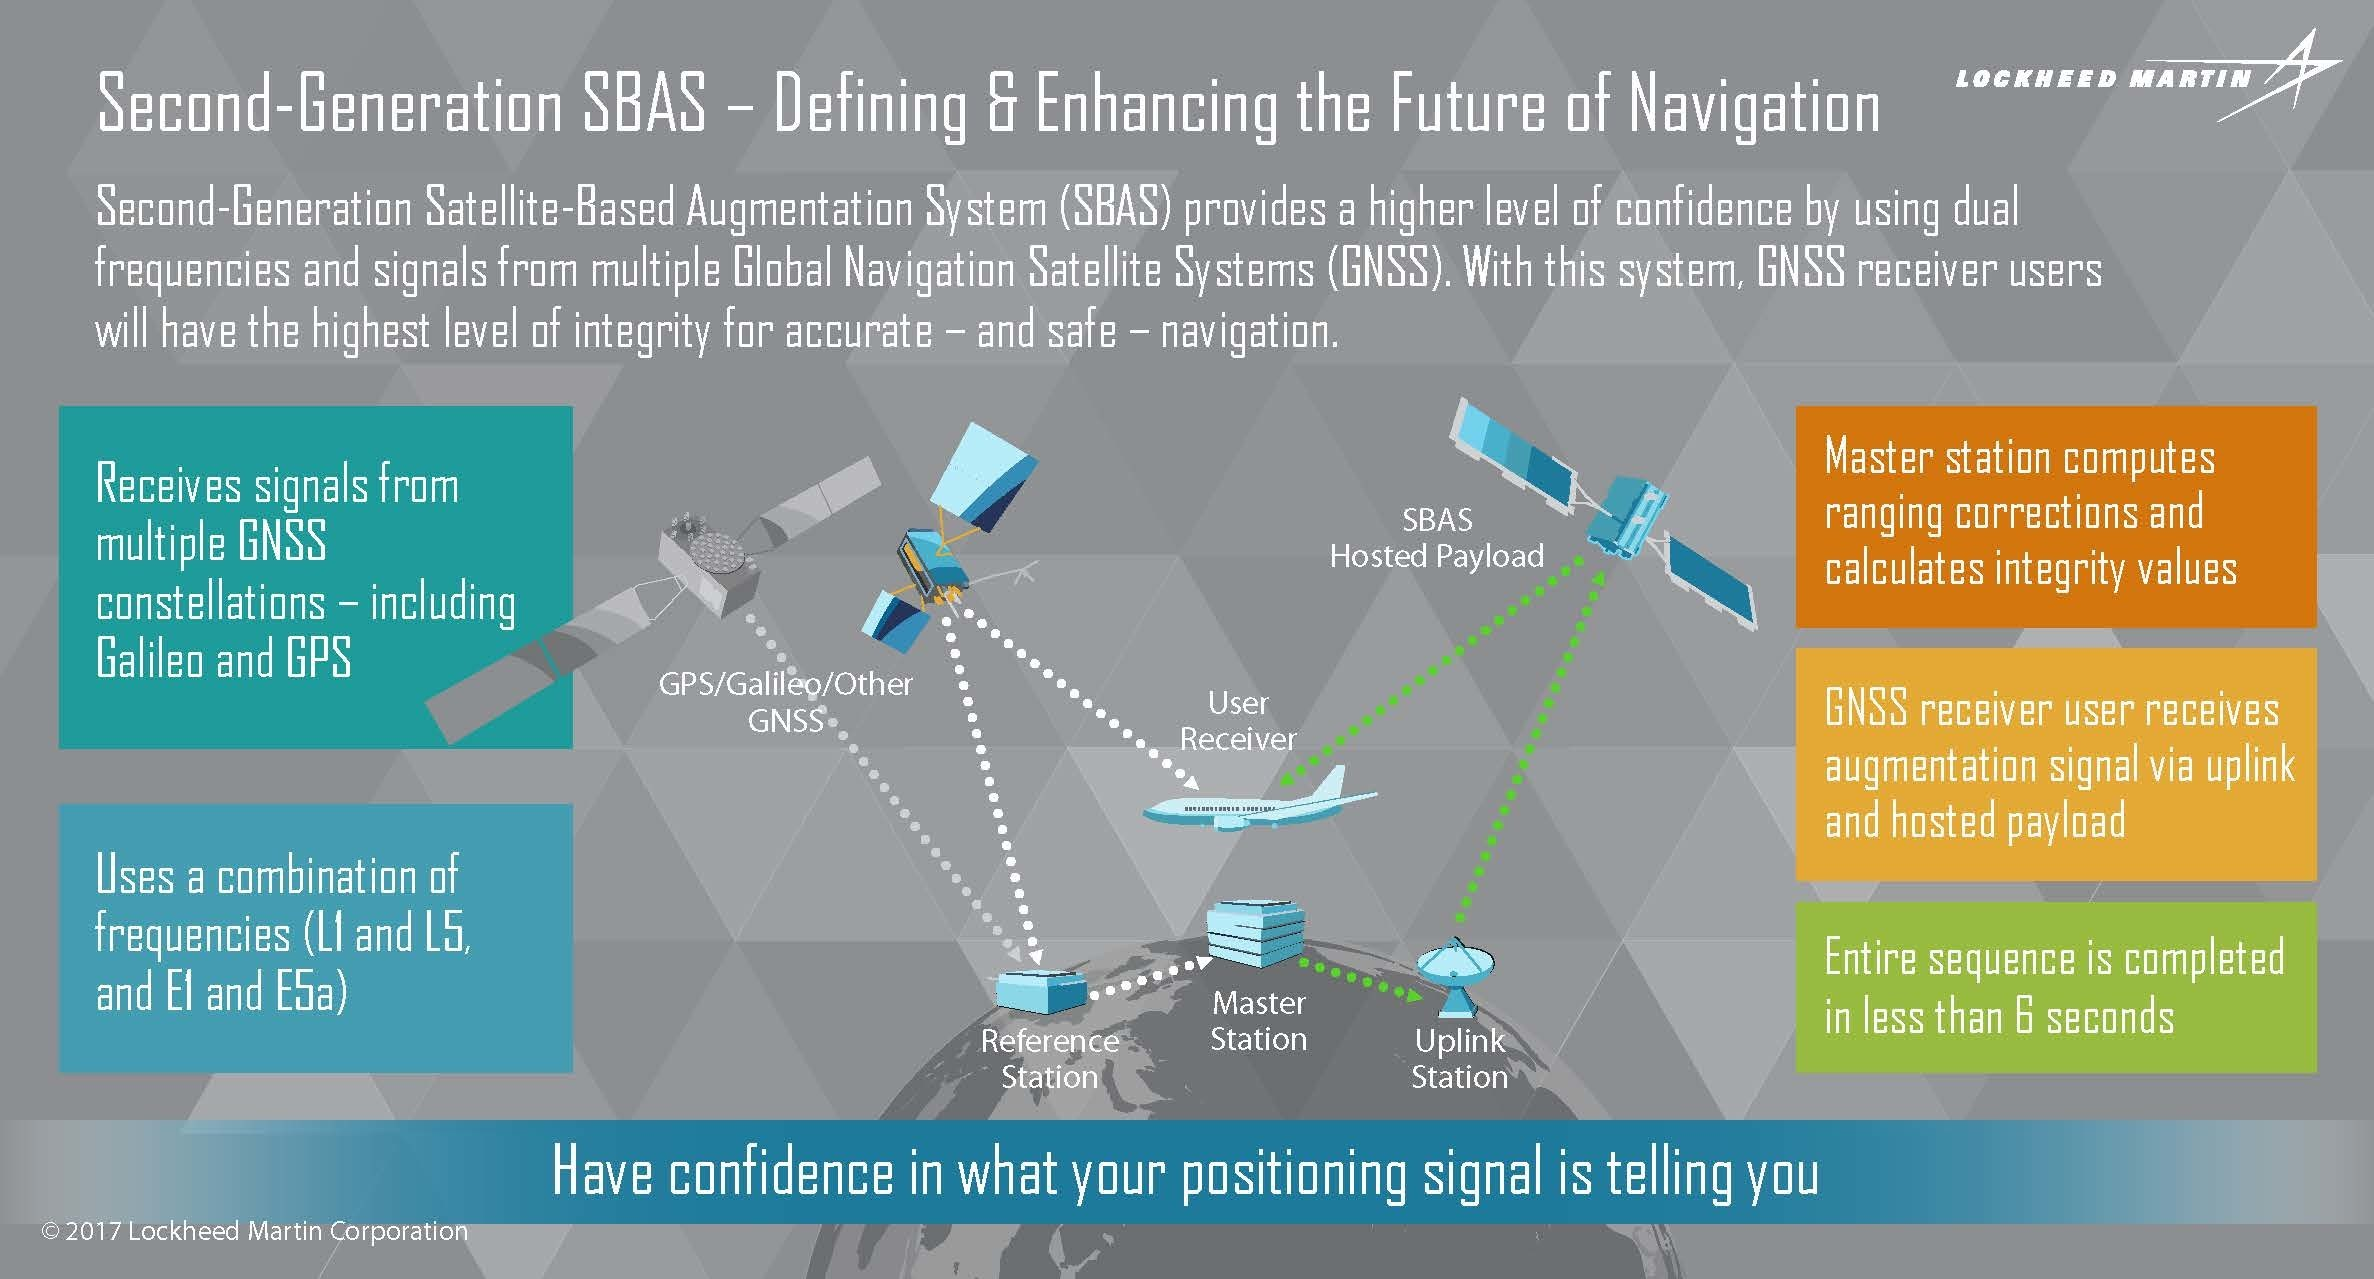 To improve precision navigation, a second-generation Satellite-Based Augmentation System (SBAS) will use signals from both the Global Positioning System (GPS) and the Galileo constellation, and dual frequencies, to achieve even greater Global Navigation Satellite System (GNSS) integrity and accuracy.